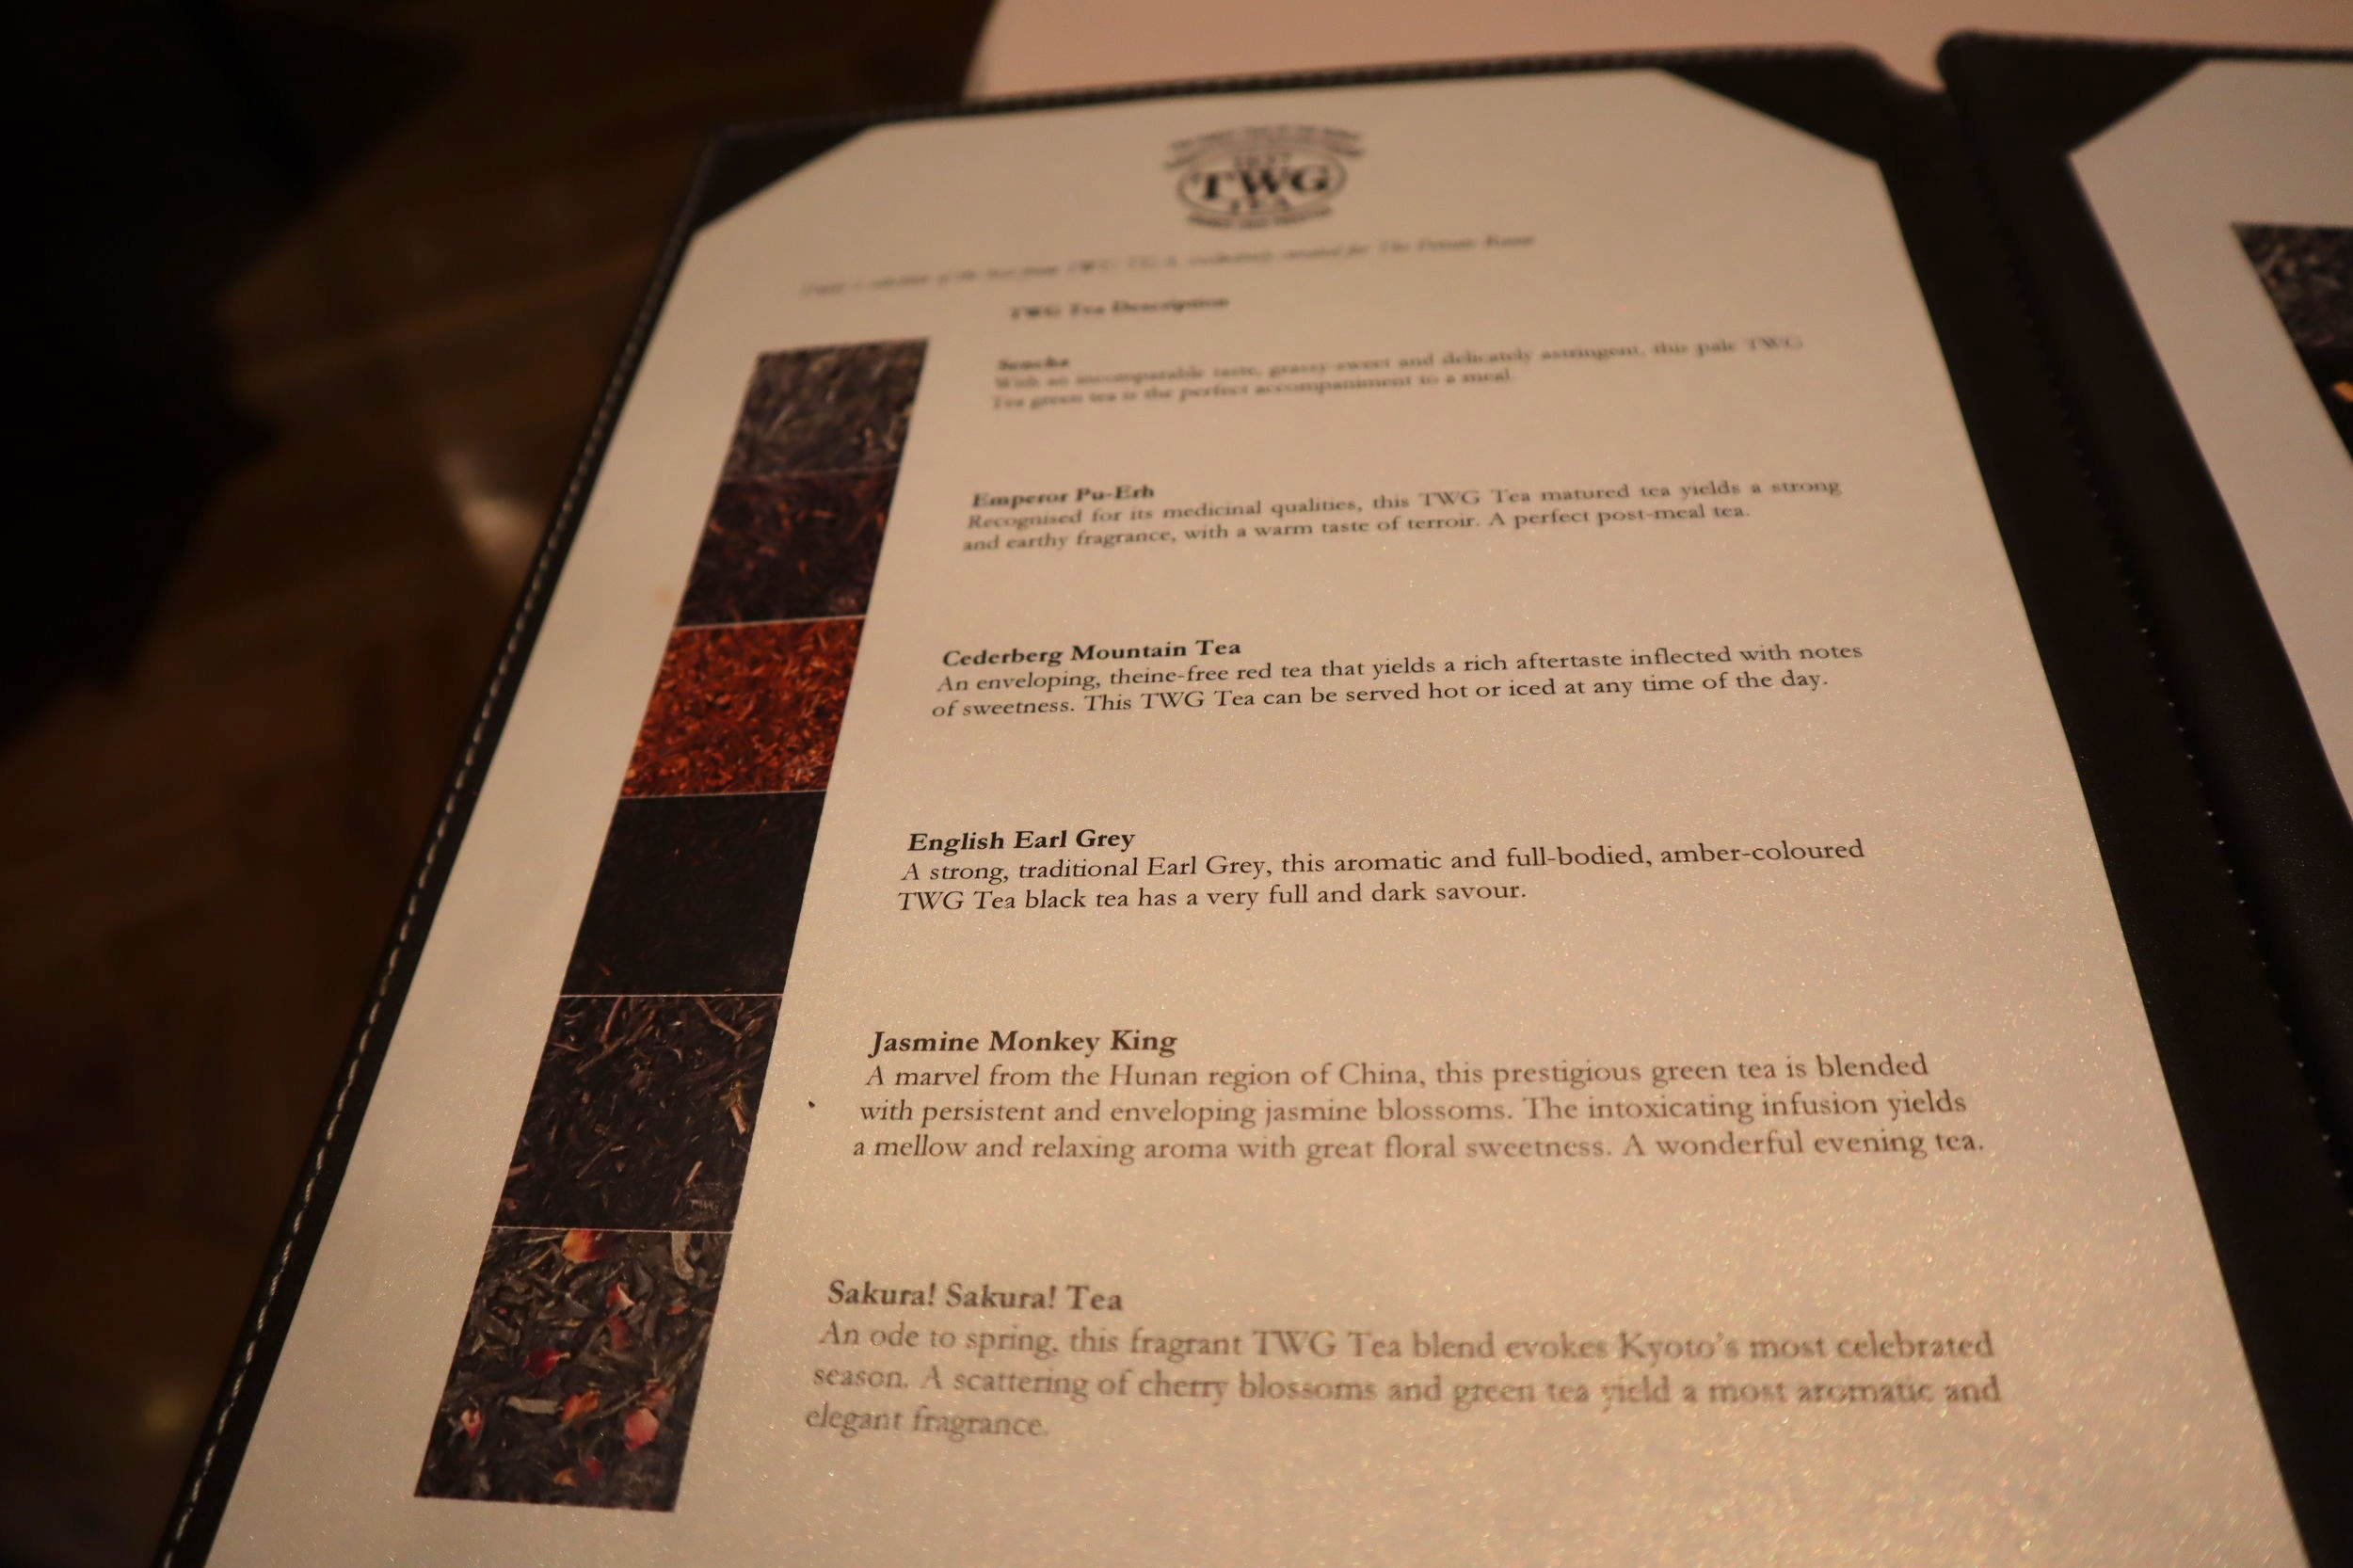 The Private Room by Singapore Airlines – Tea menu